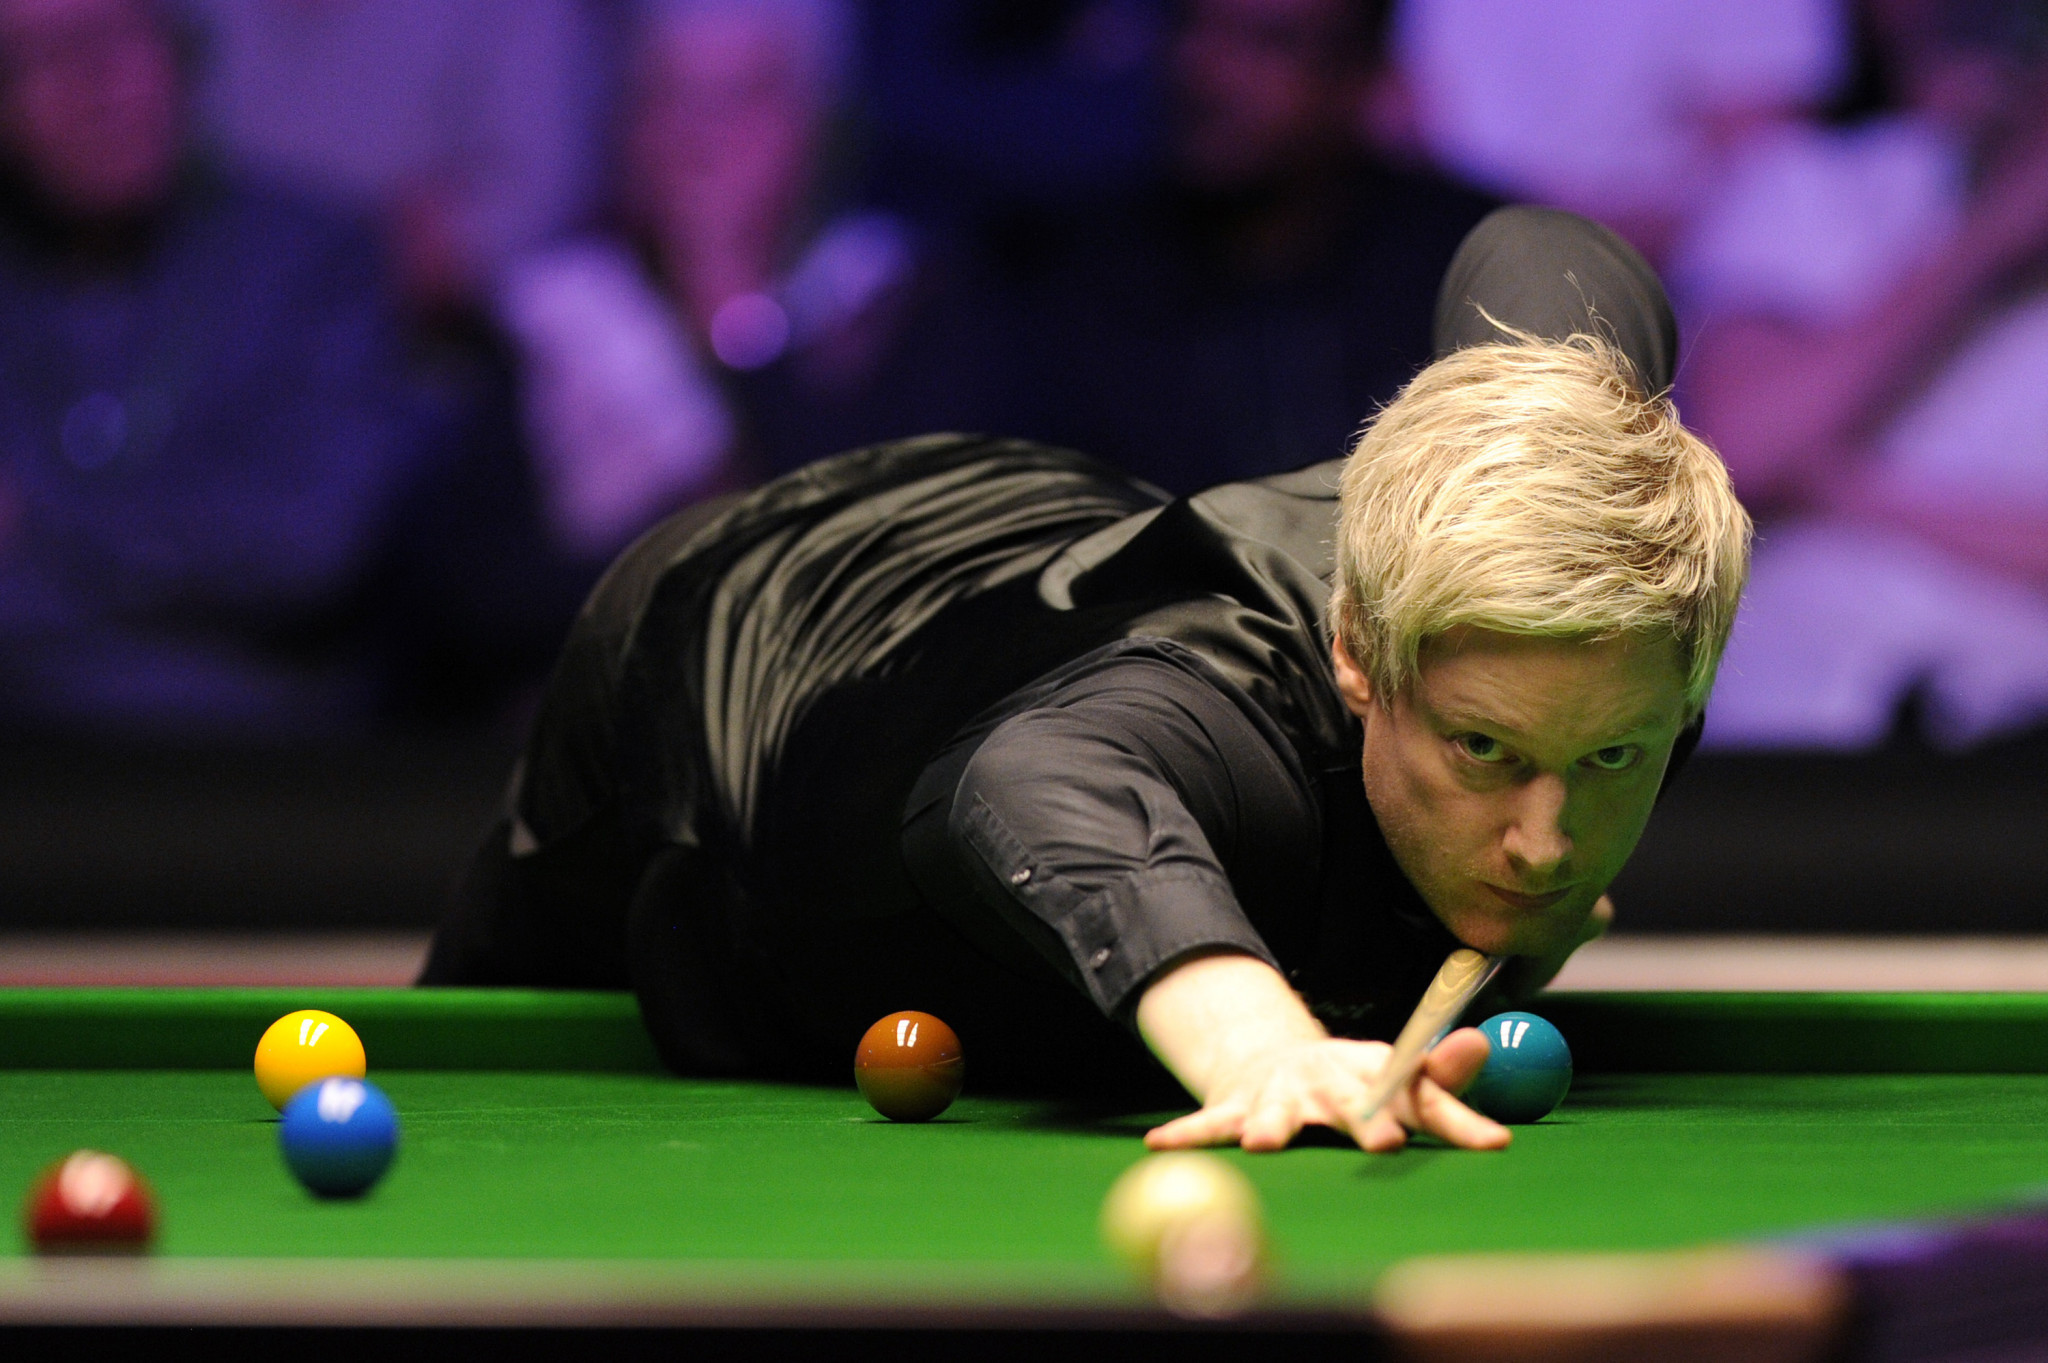 Robertson cruises into World Snooker Championship second round but misses out on piece of history